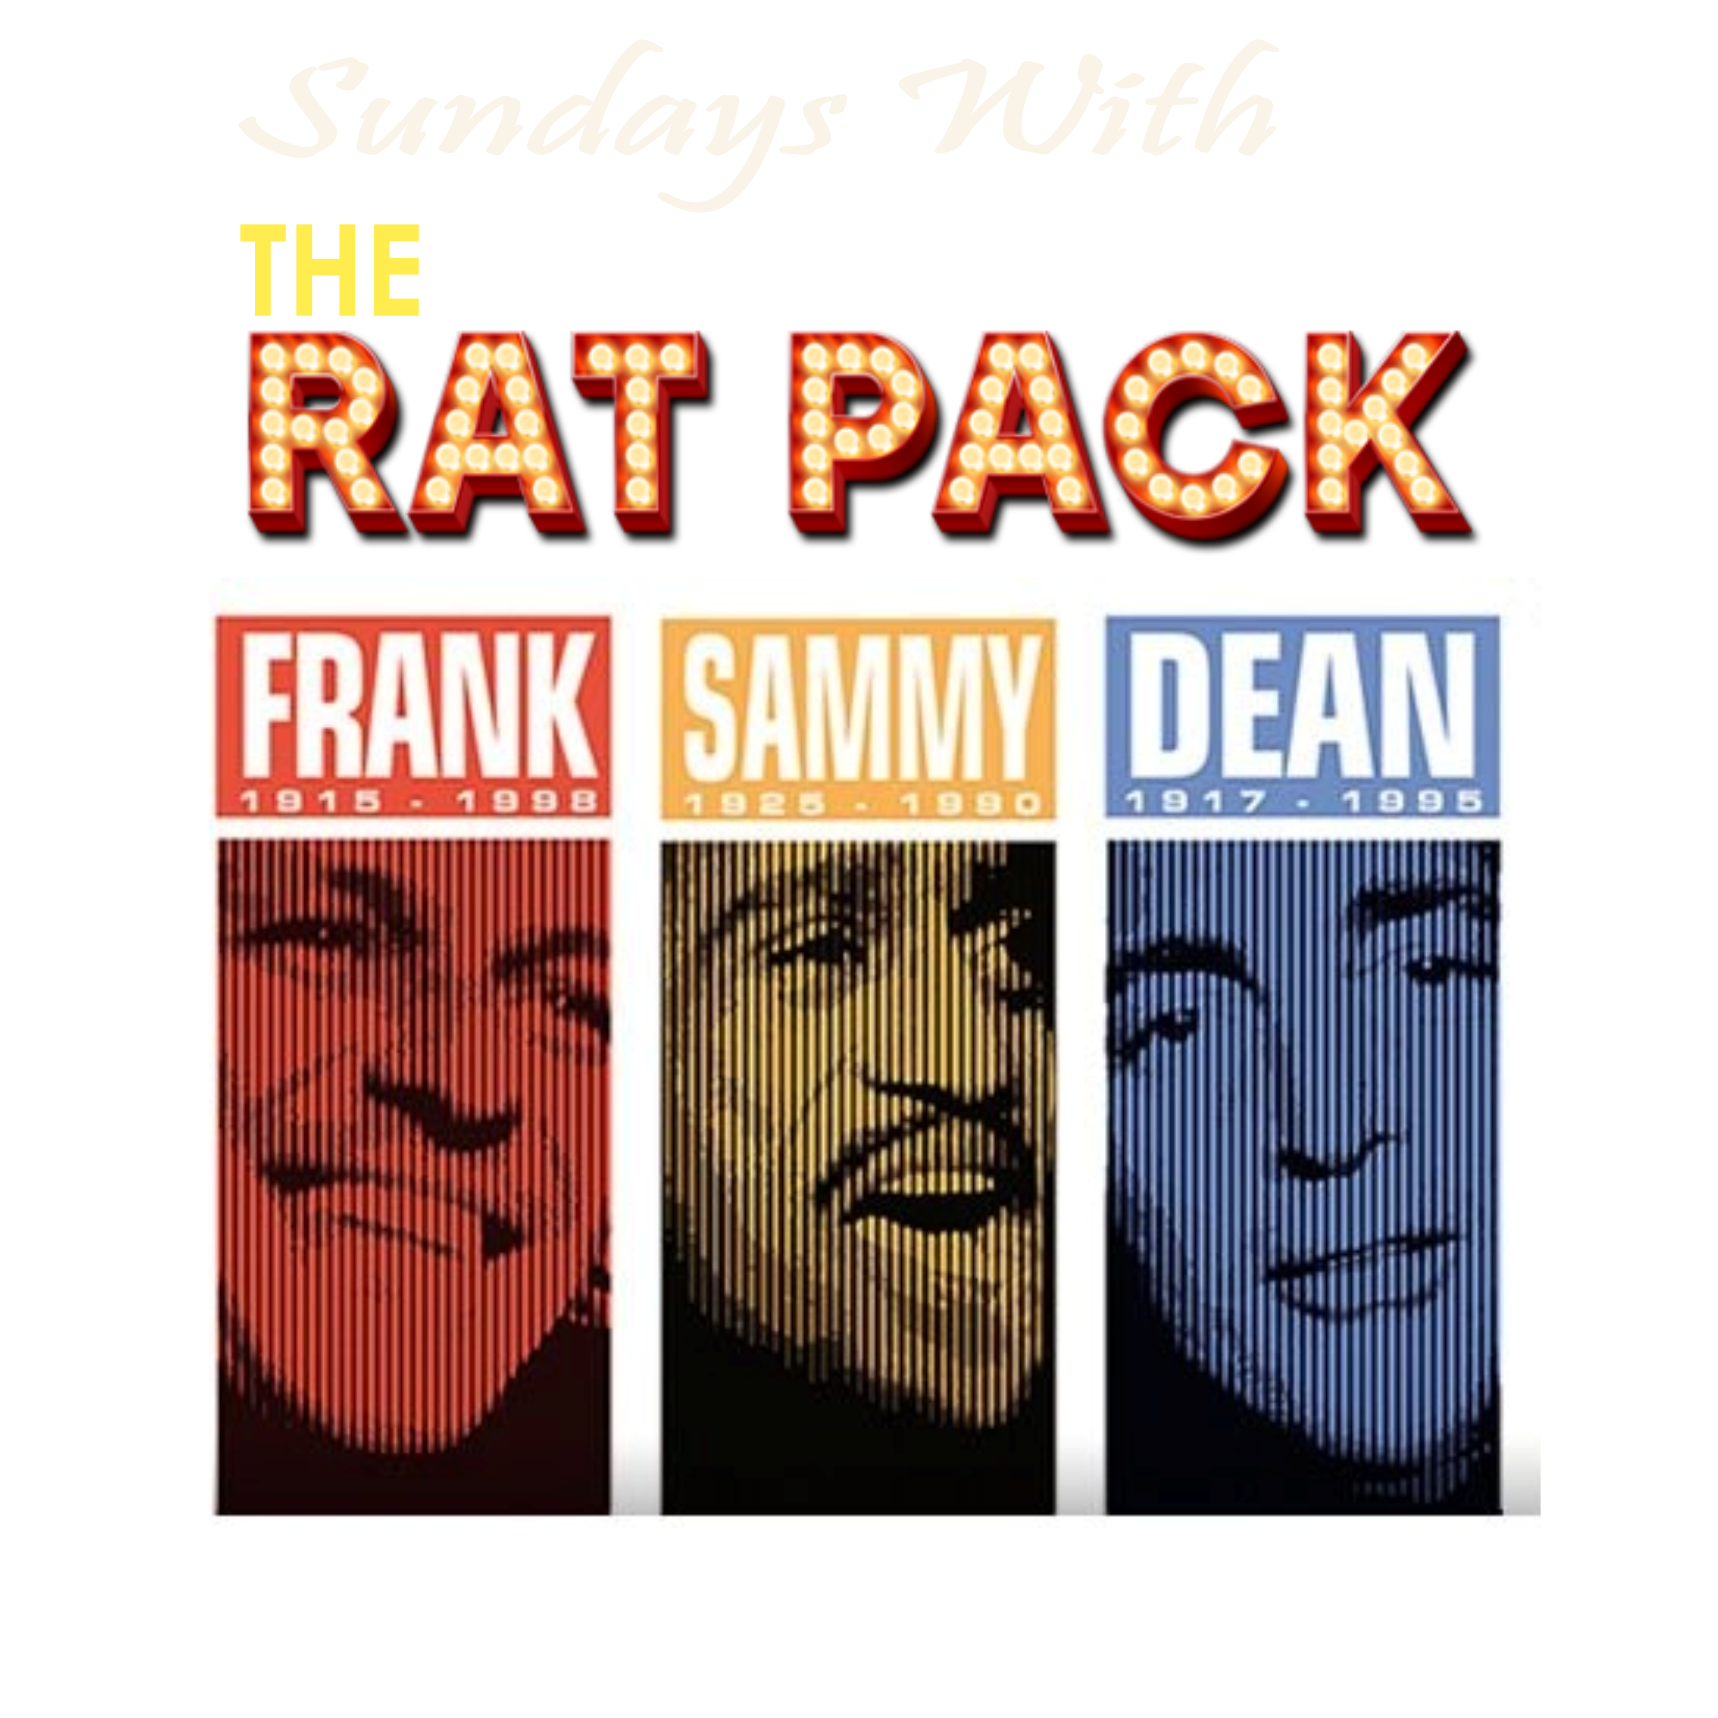 SUNDAYS WITH THE RAT PACK - SUNDAYS from 3pm-6pm PST/6pm-9pm EST. The best of Frank, Sammy and Dean! Join our VIP club to listen on demand at your leisure.